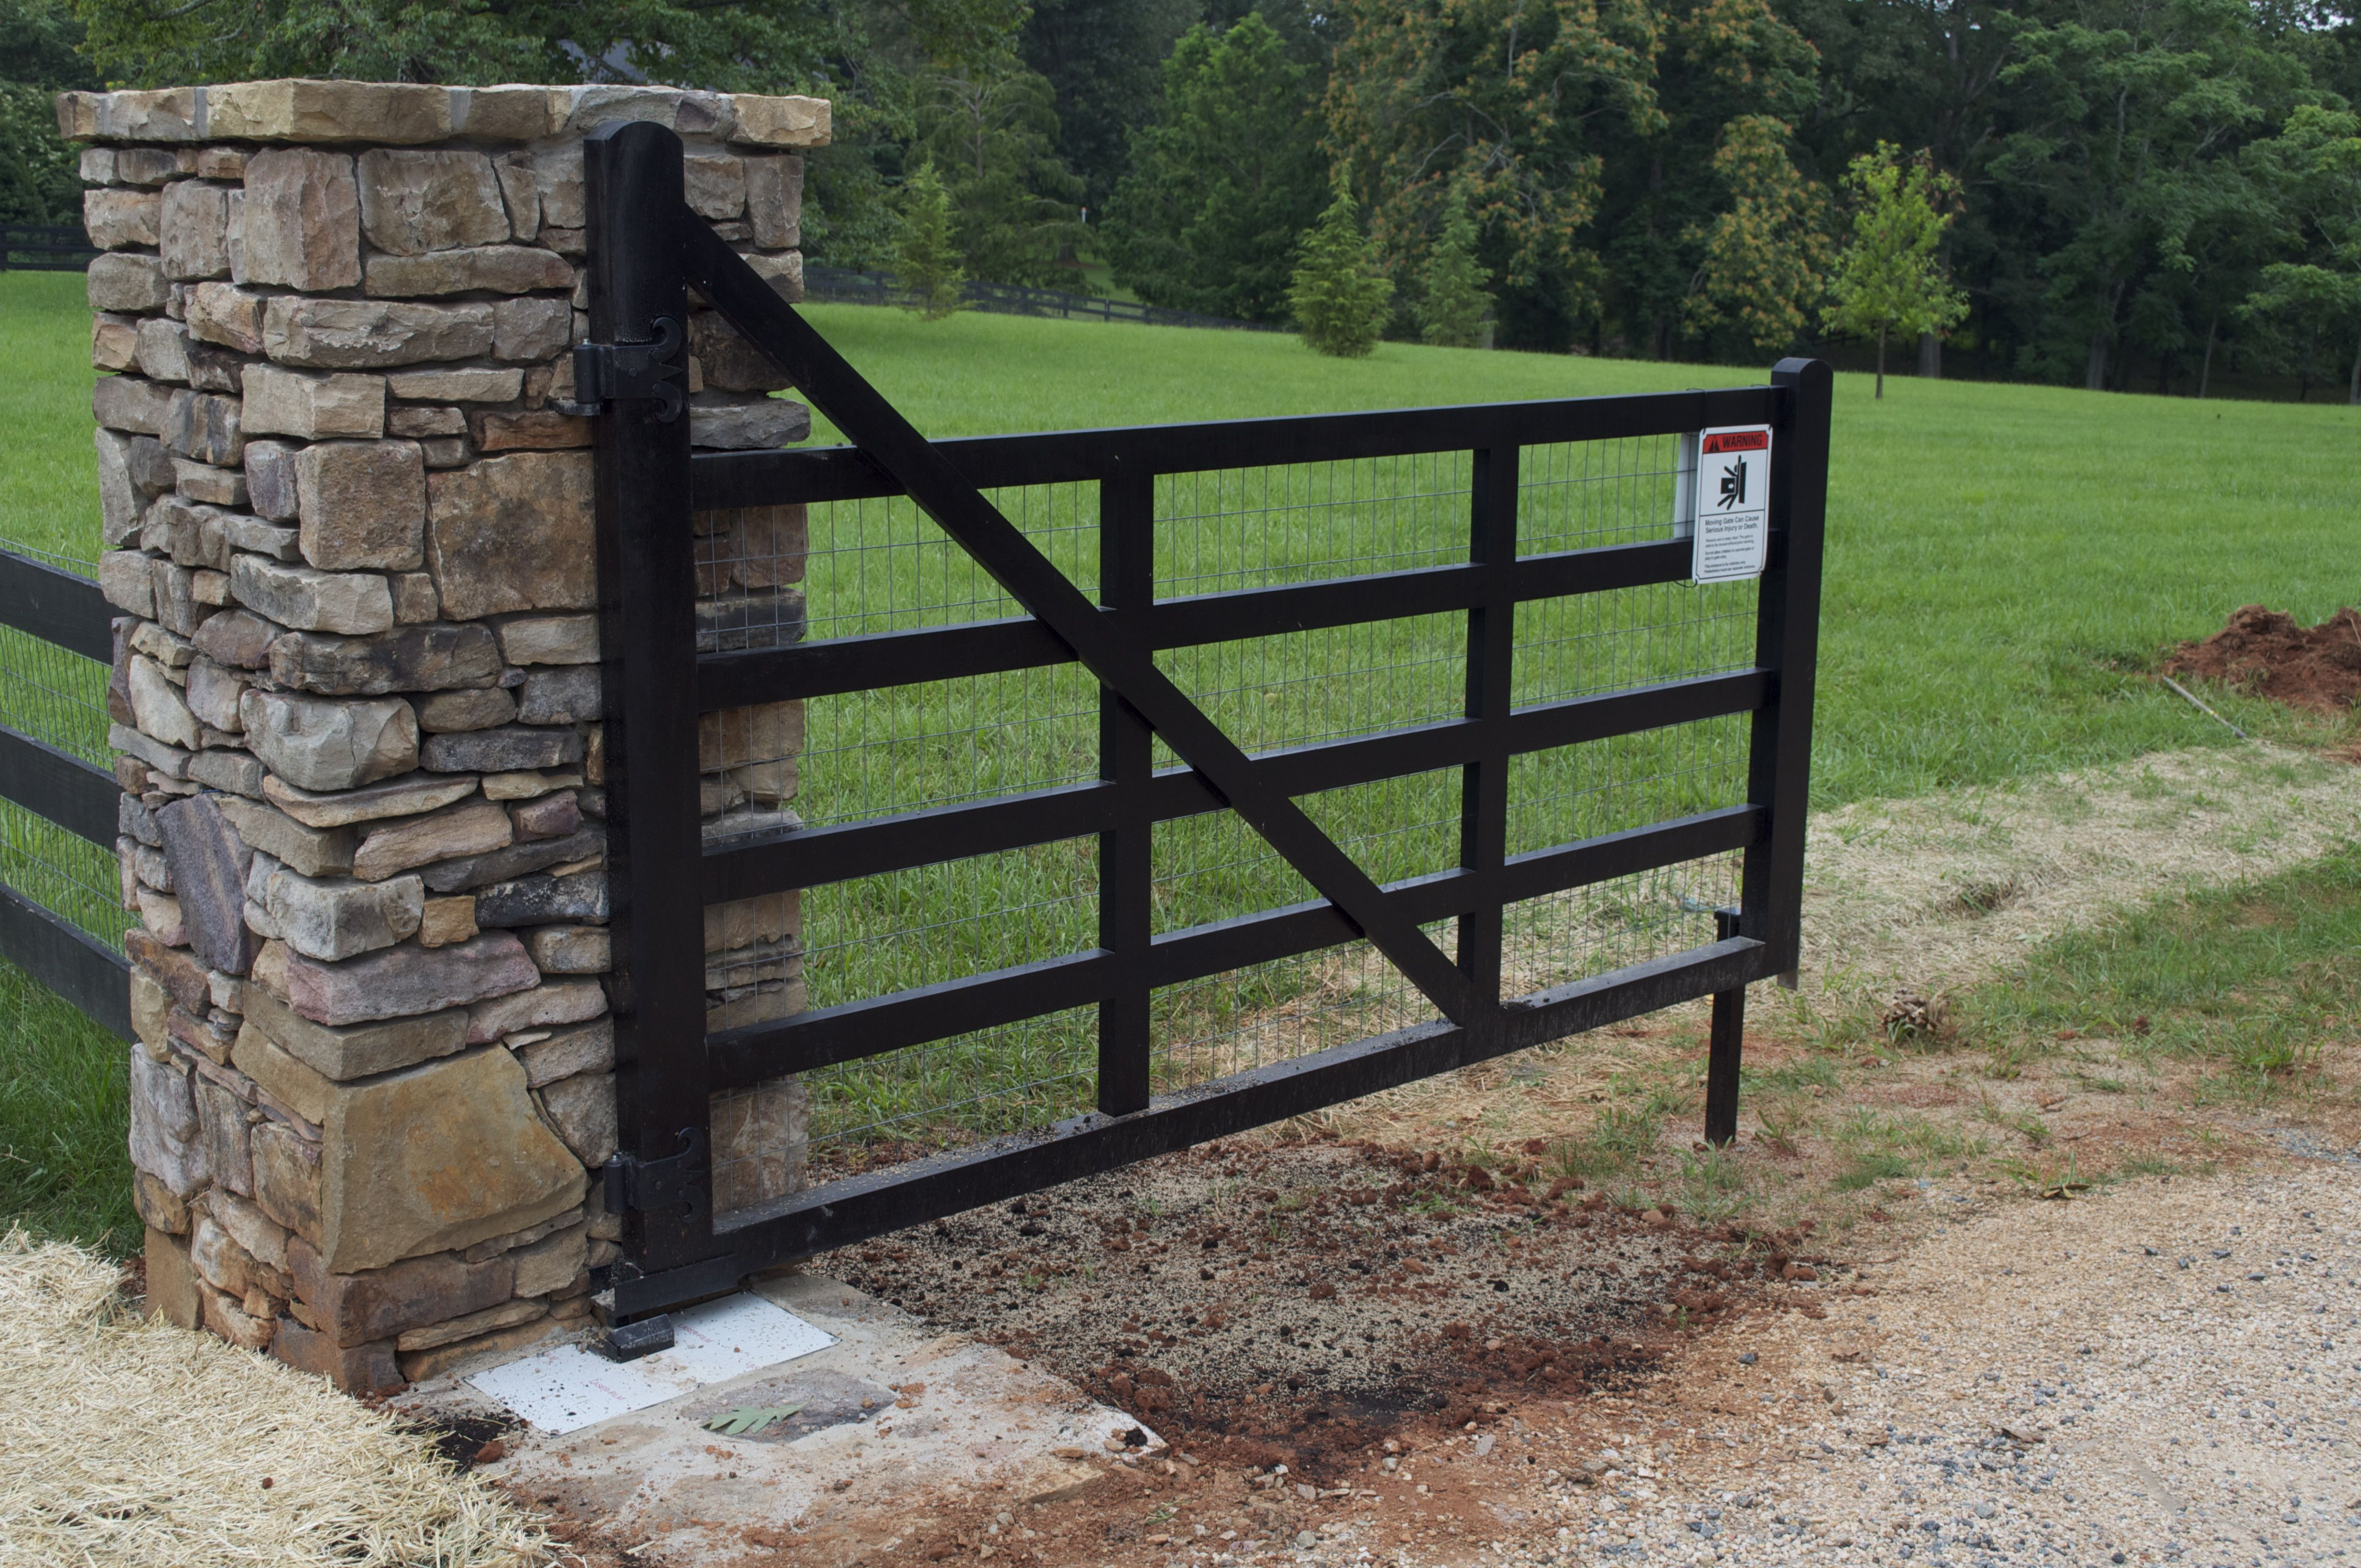 Residential 4 Board Gate Entrance To A Farm Automatic Opener Using In Ground Faac Operator Farm Entrance Farm Gate Entrance Entrance Gates